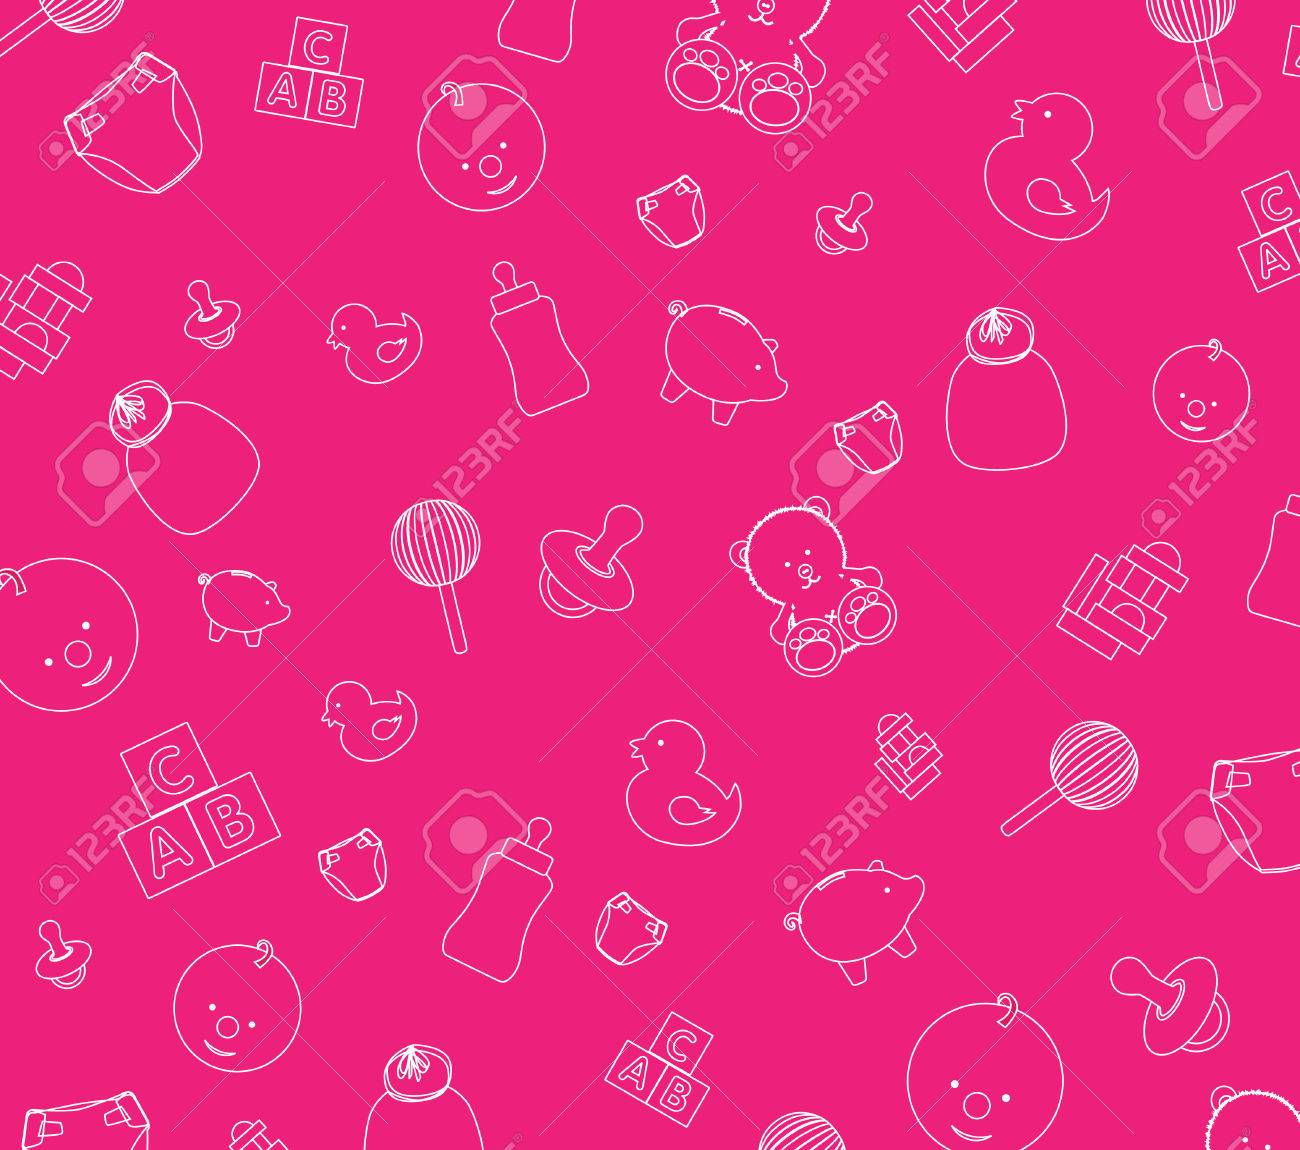 Illustration of pink baby wallpaper background Stock Vector - 4830745